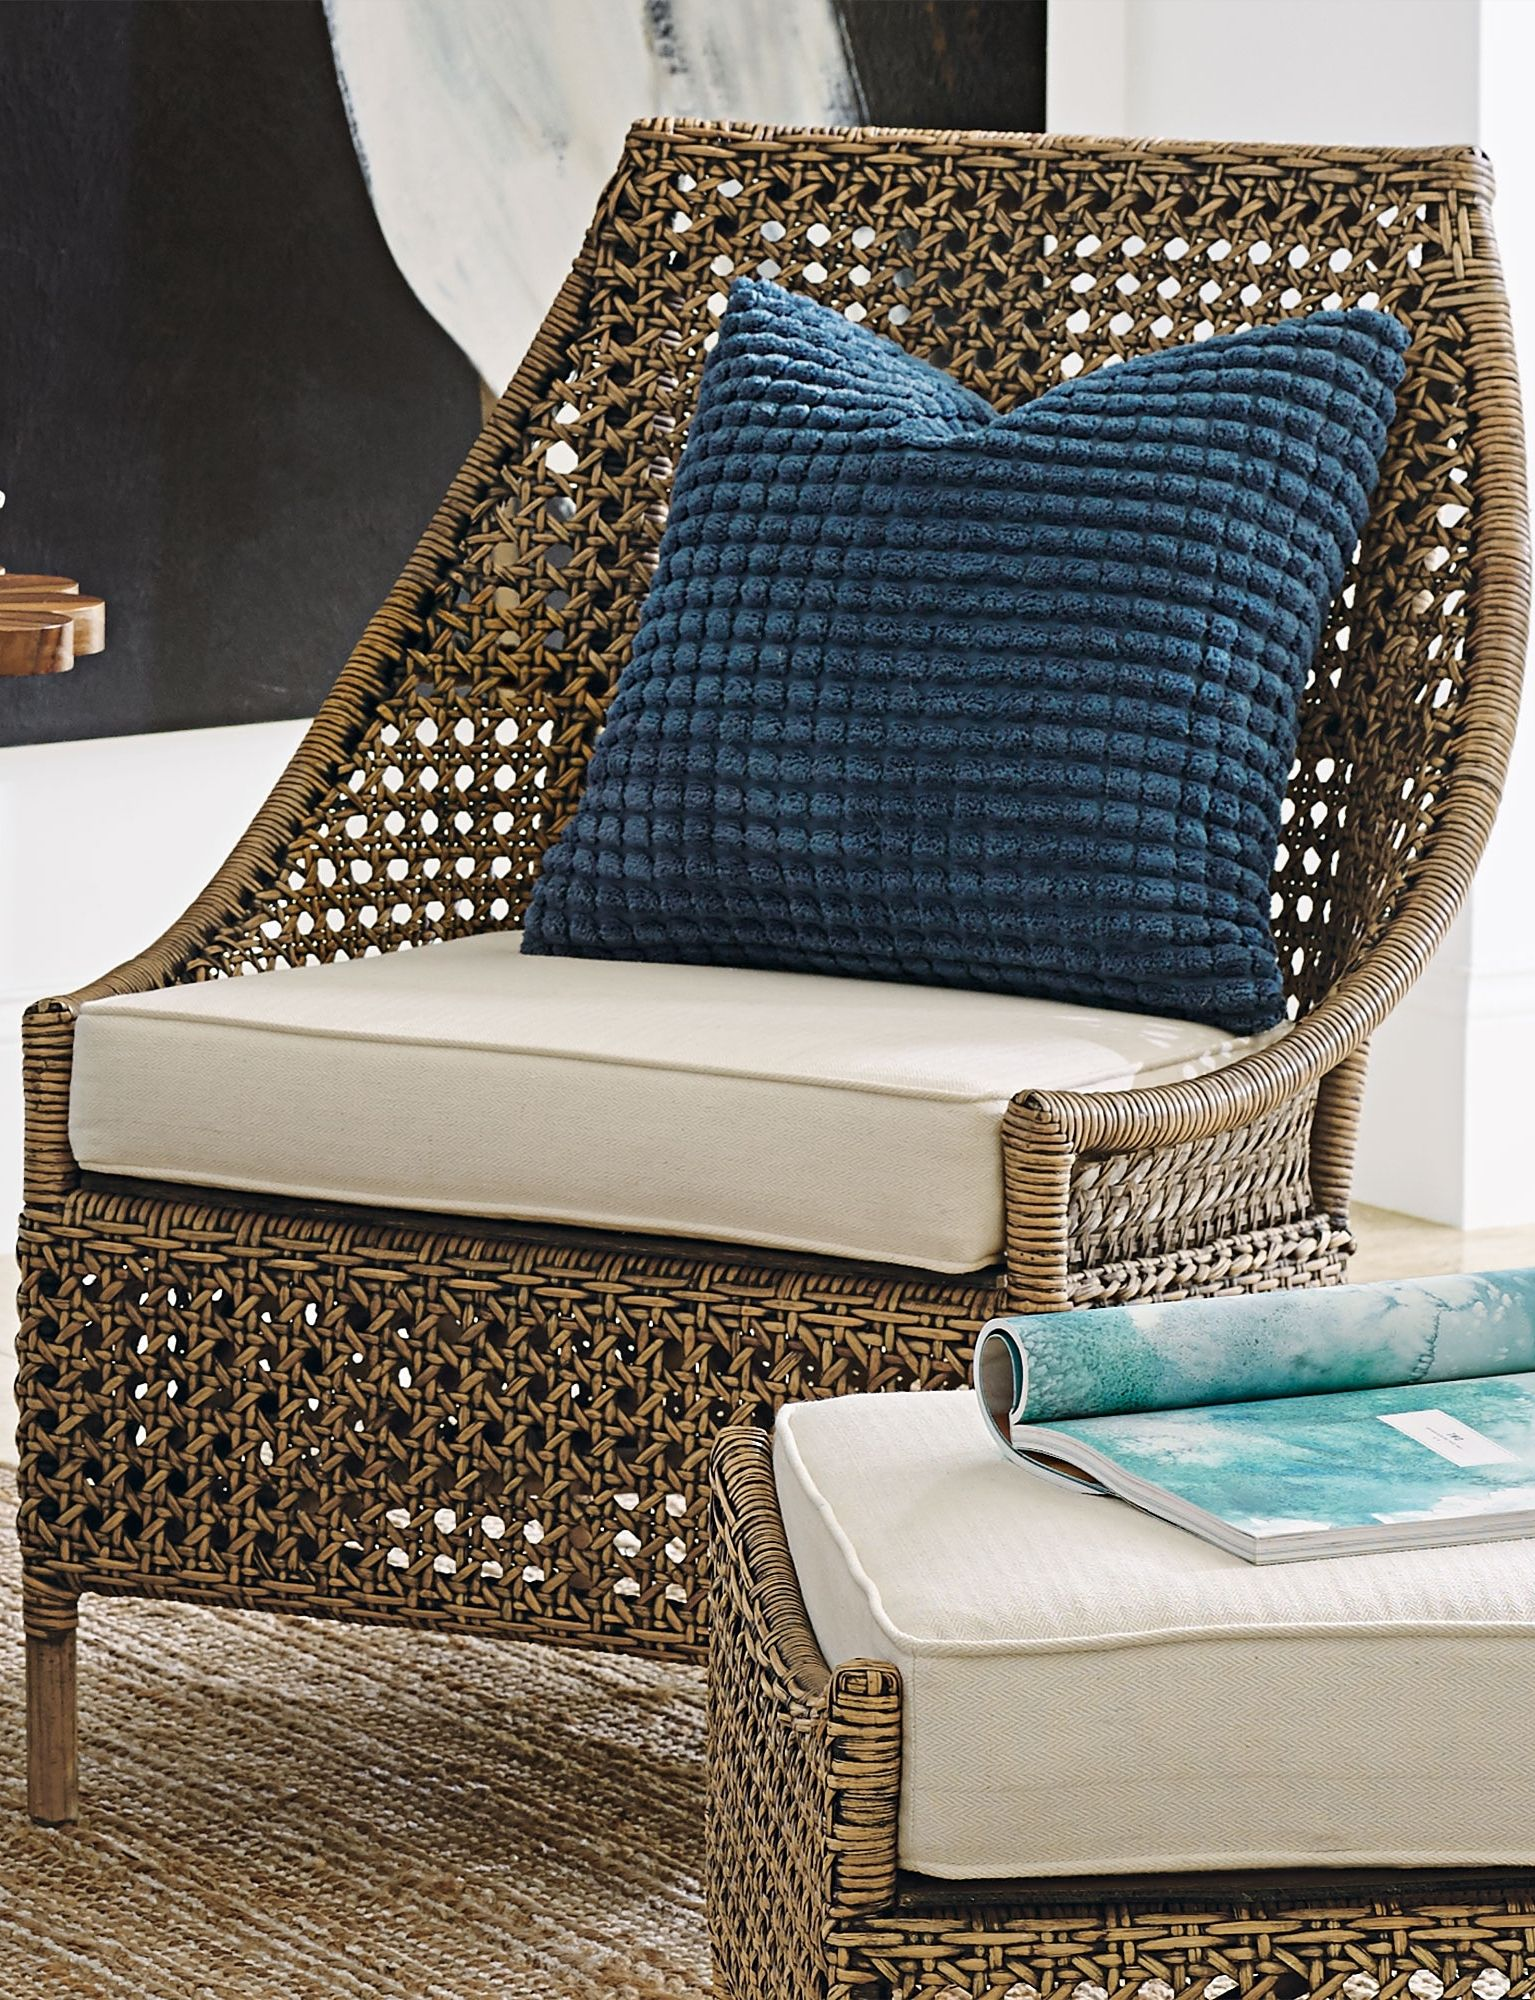 Two Stylish High Back Rattan Chairs Delight With Diffe Looks